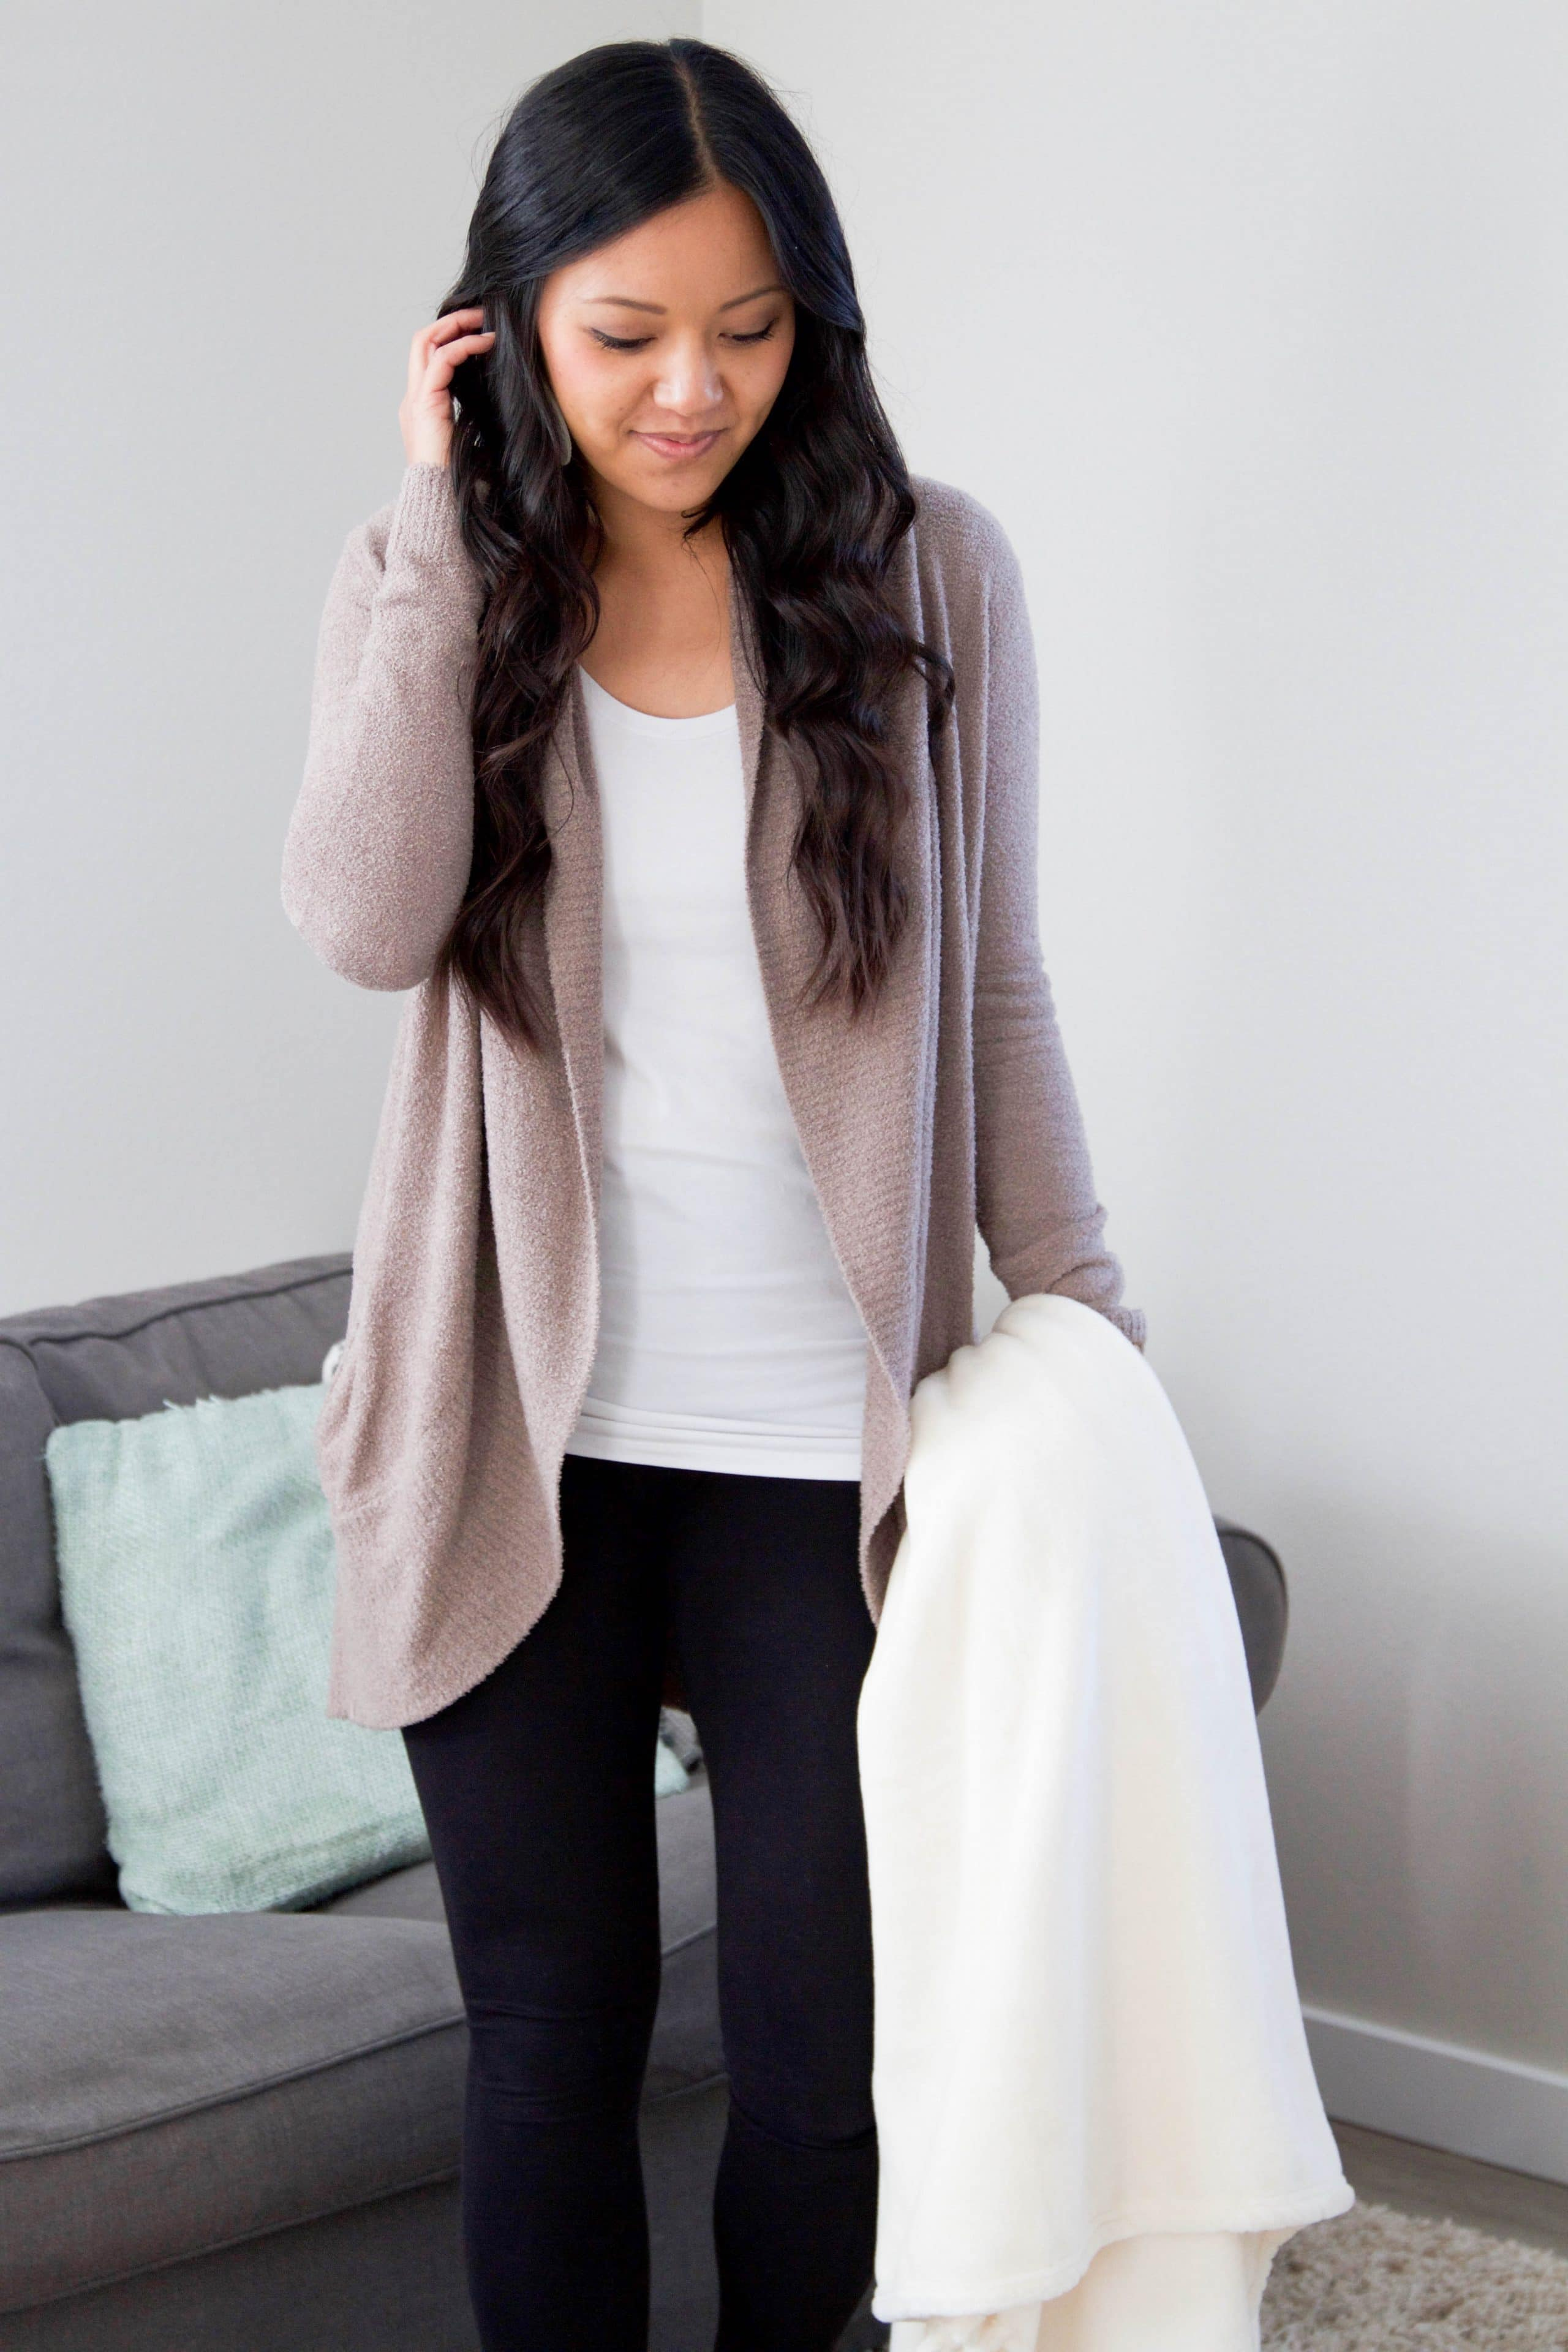 Comfy At Home Outfit: Leggings + Cardigan + Camisole + Plush Blanket